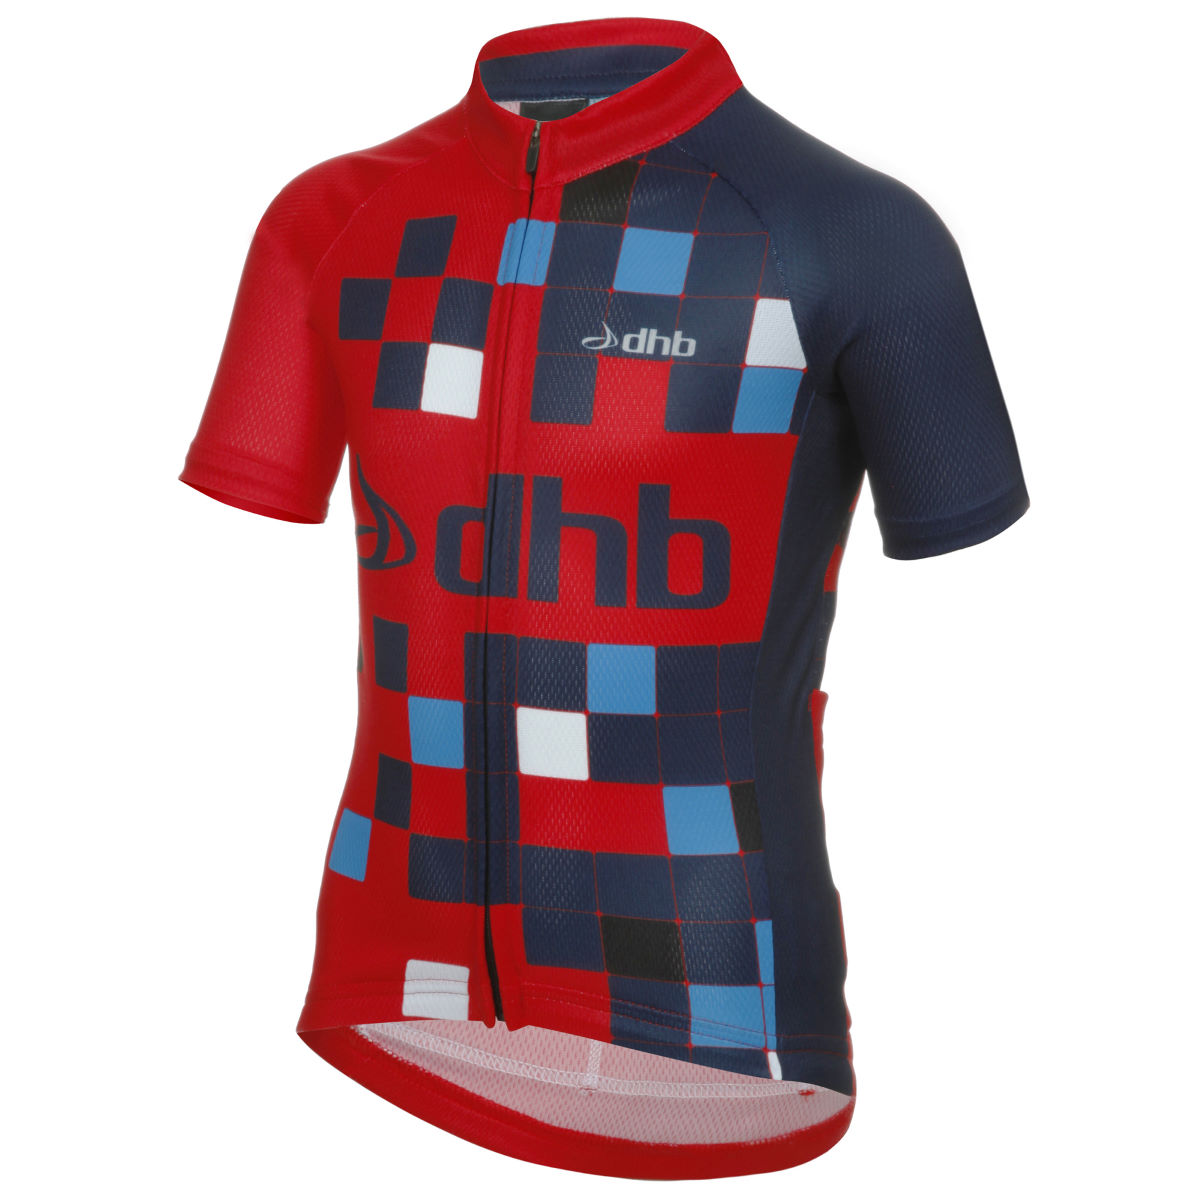 Maillot Enfant dhb Logo (manches courtes) - 8-10 Years Red/Blue Maillots vélo à manches courtes